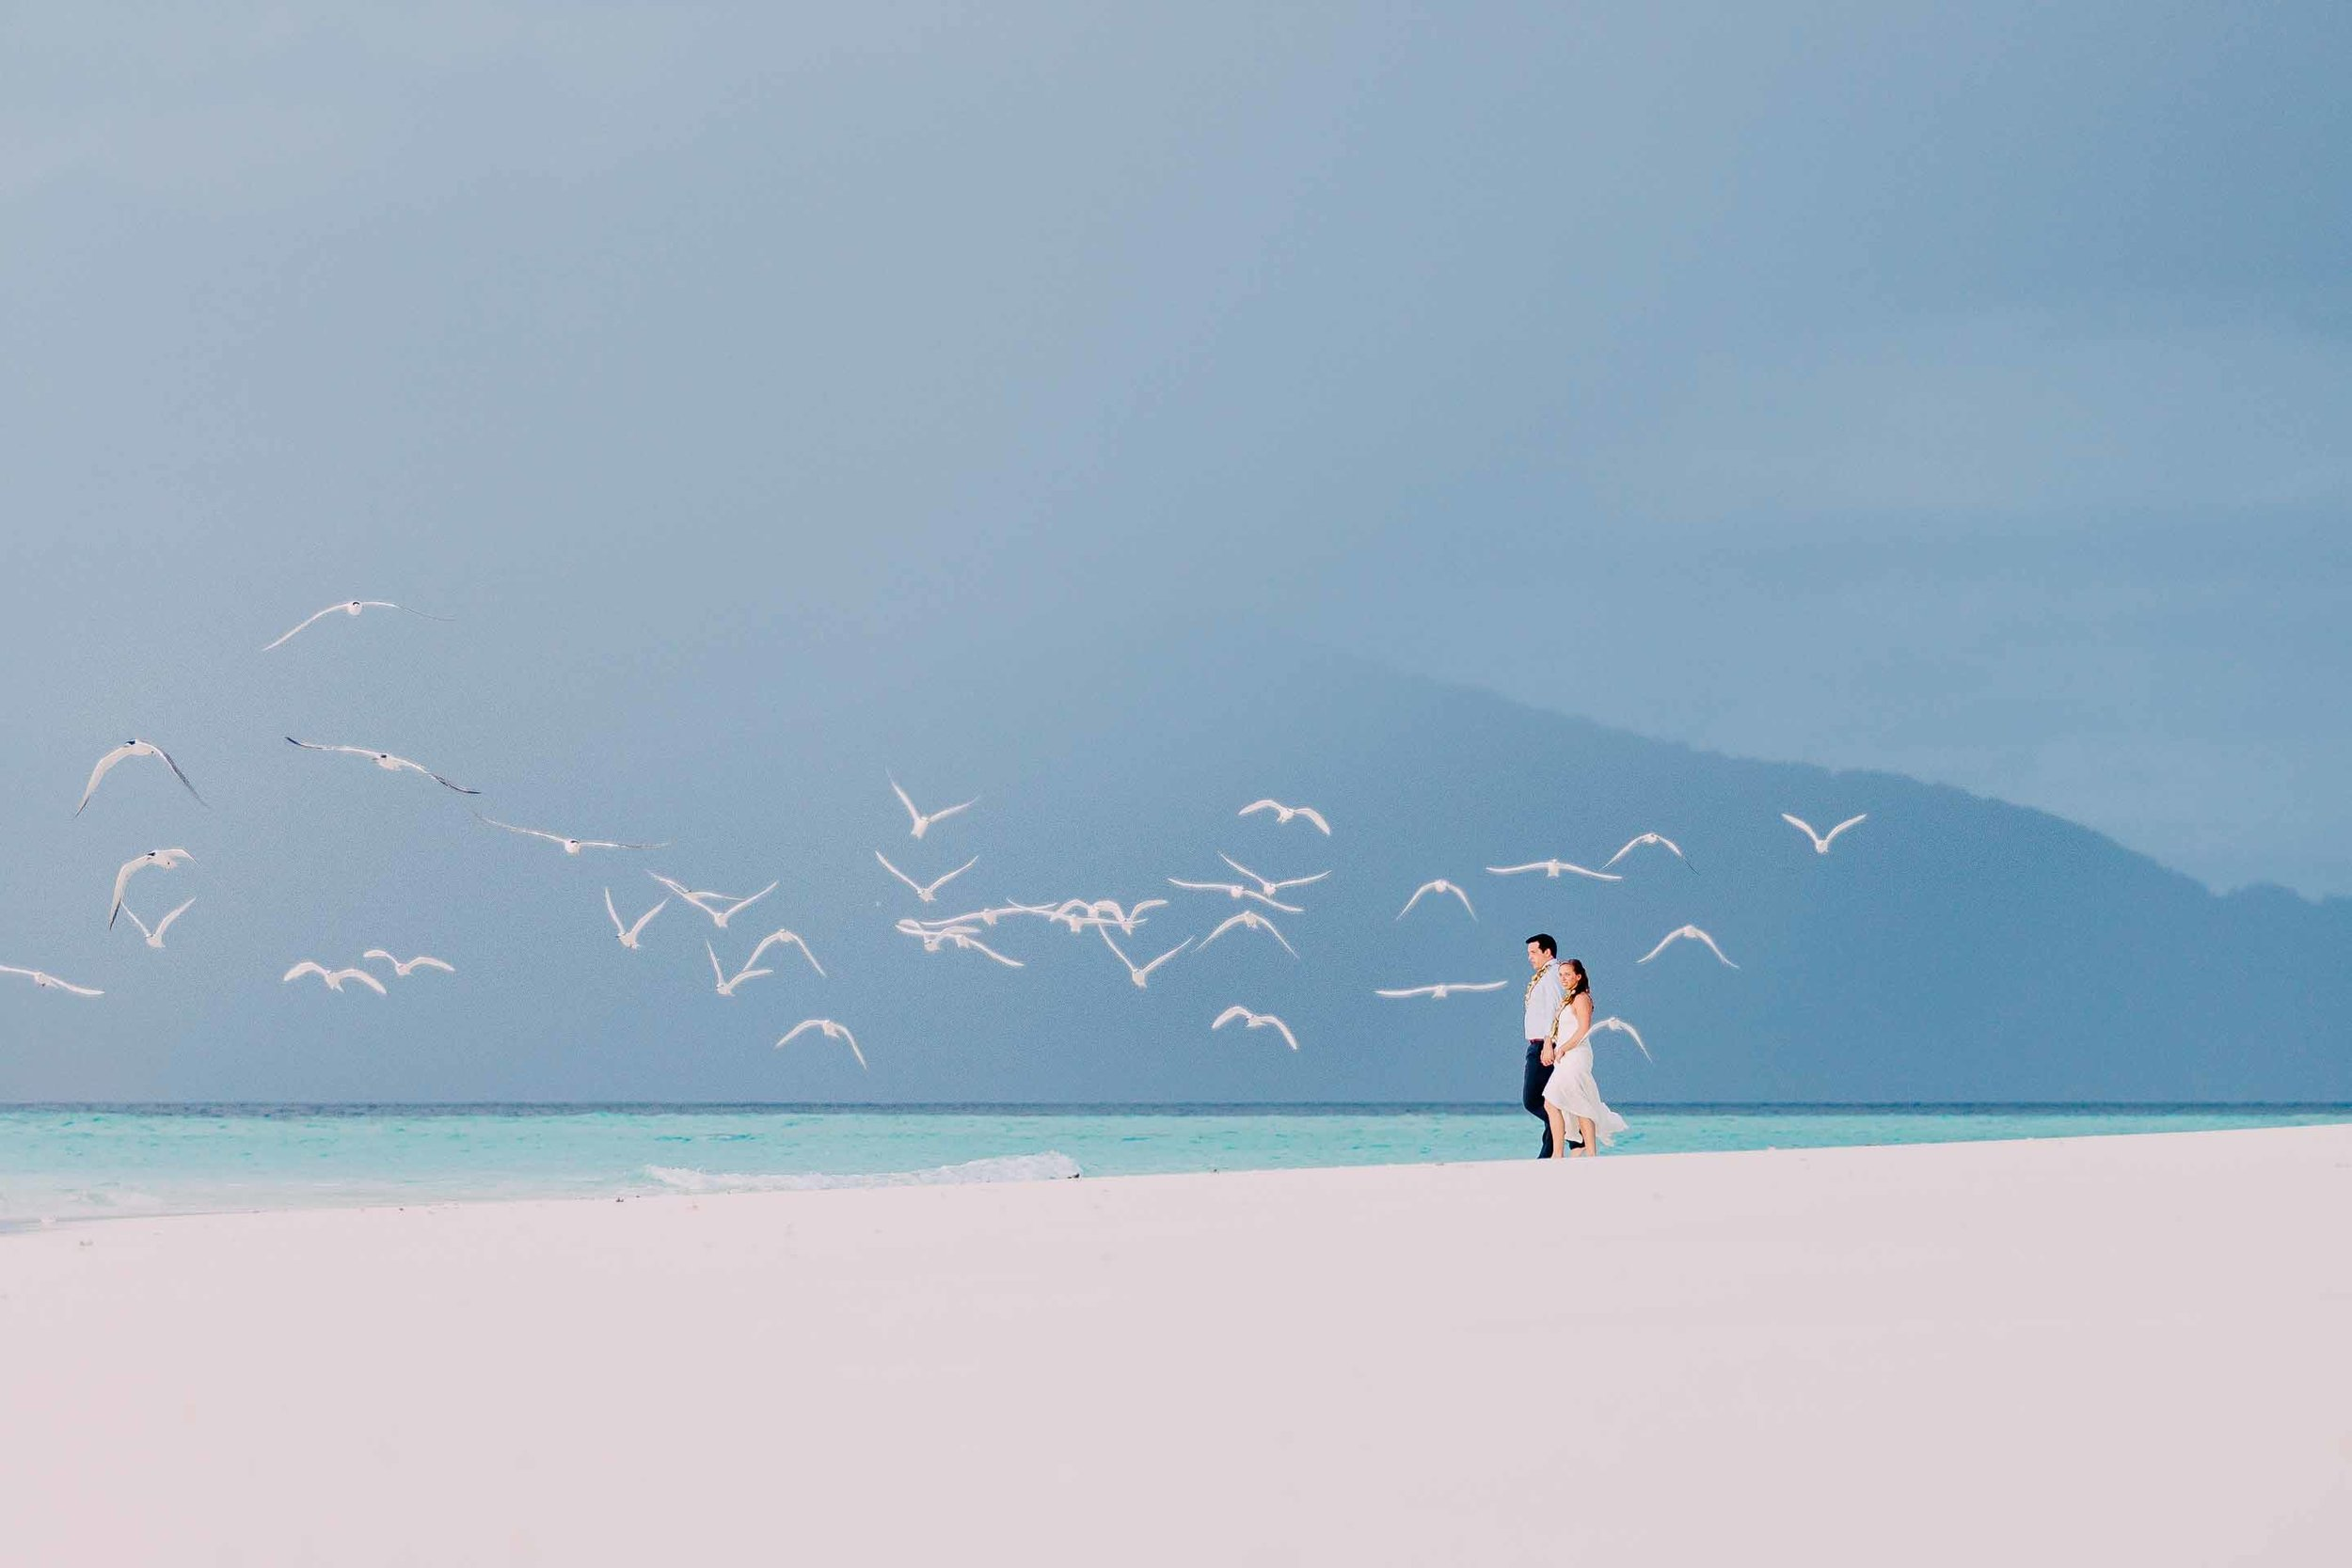 Flock of white gulls take flight as the bride and groom explore their own piece of paradise where they got married.